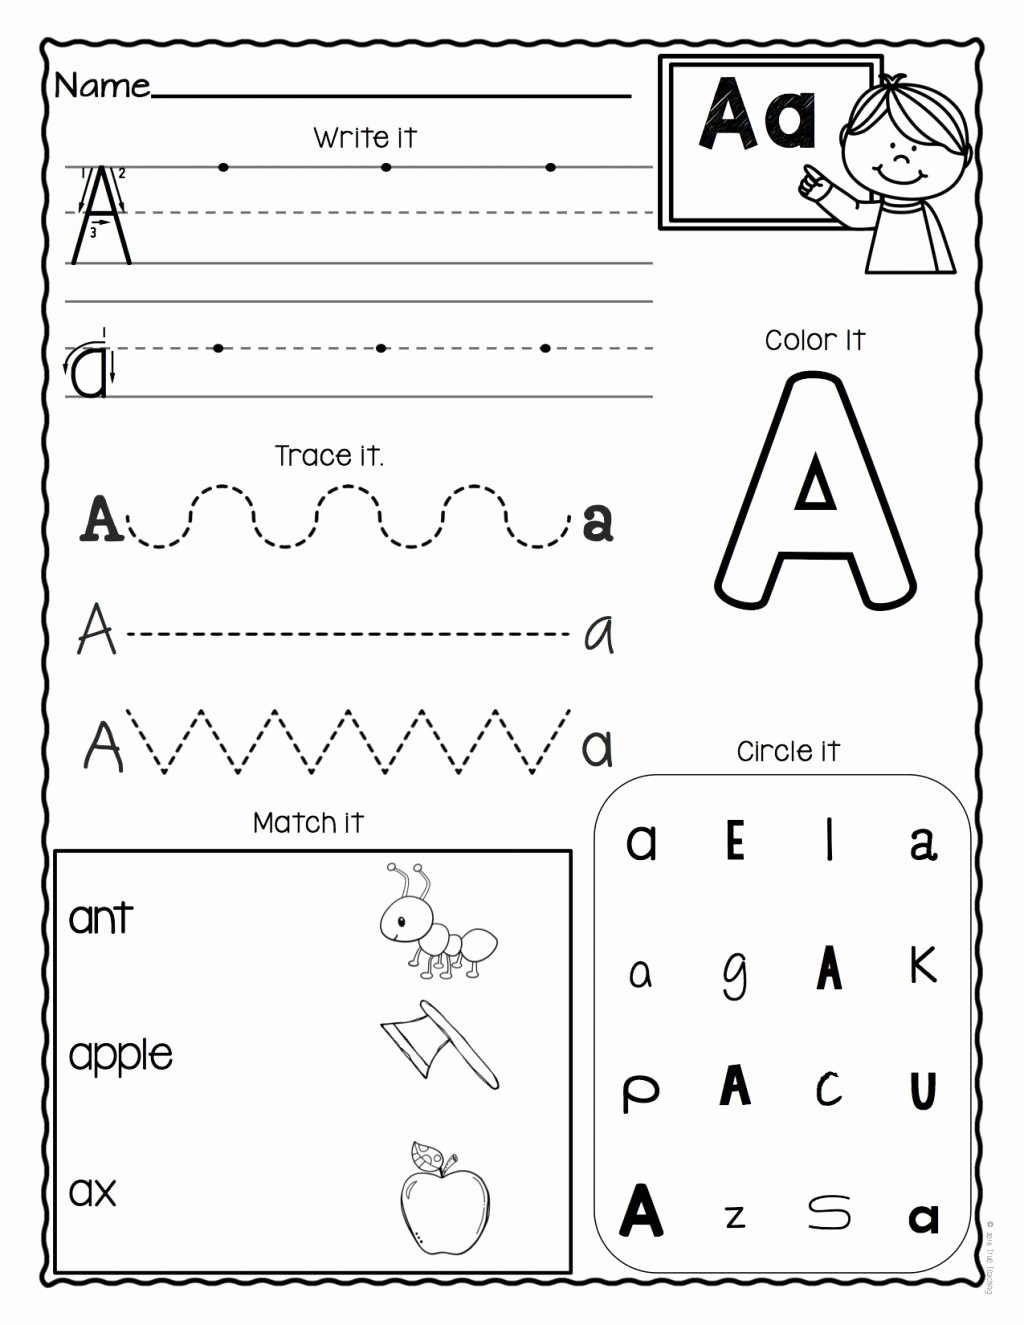 Worksheets for Preschoolers Alphabet Fresh Worksheet Trace the Letter Worksheets Preschool Alphabet